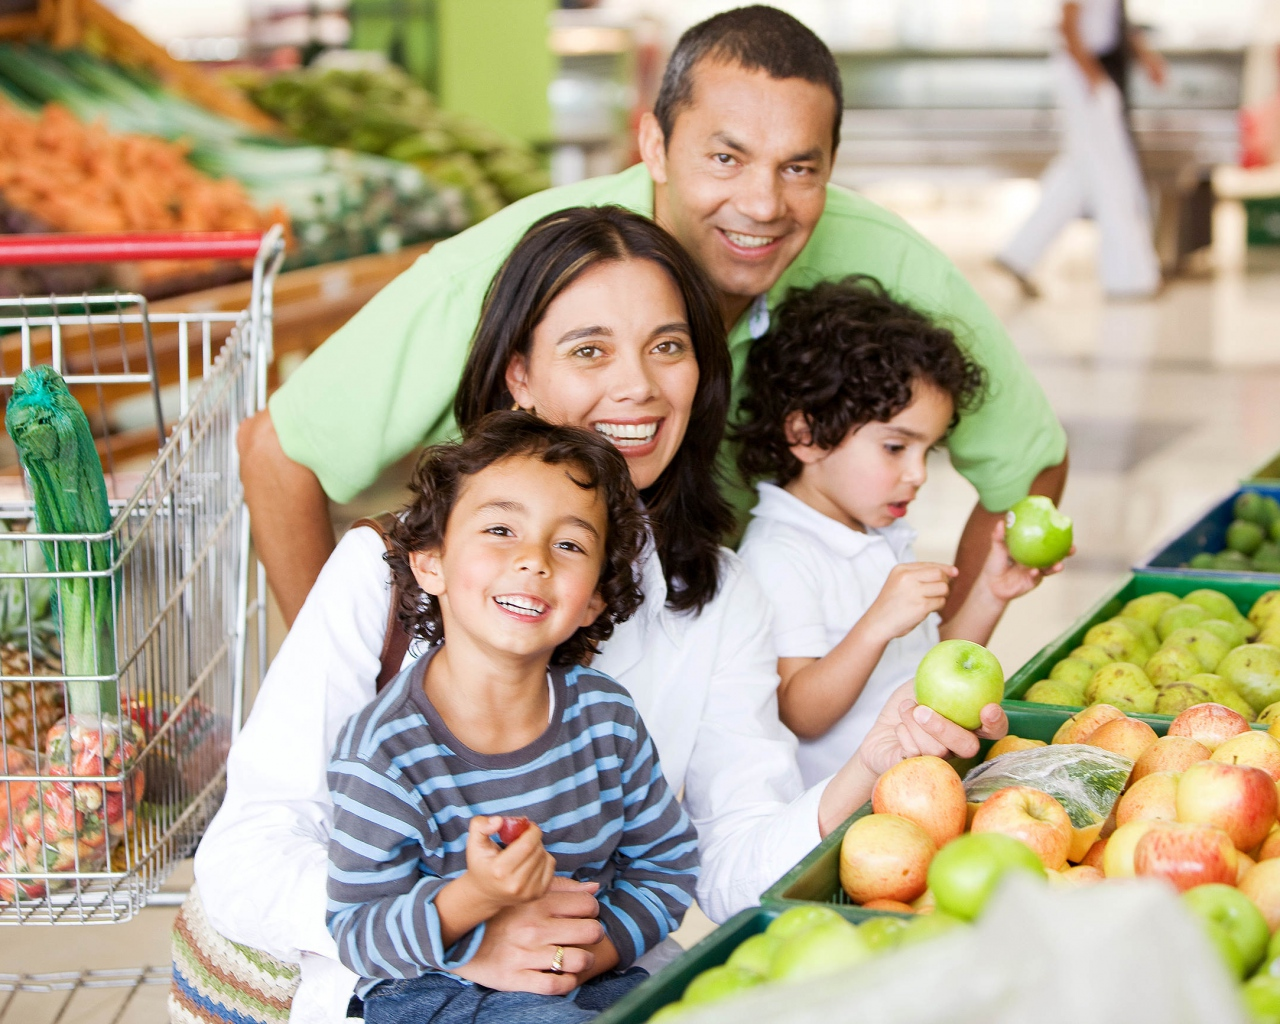 family_food_supermarket_shop_shopping_80678_1280x1024